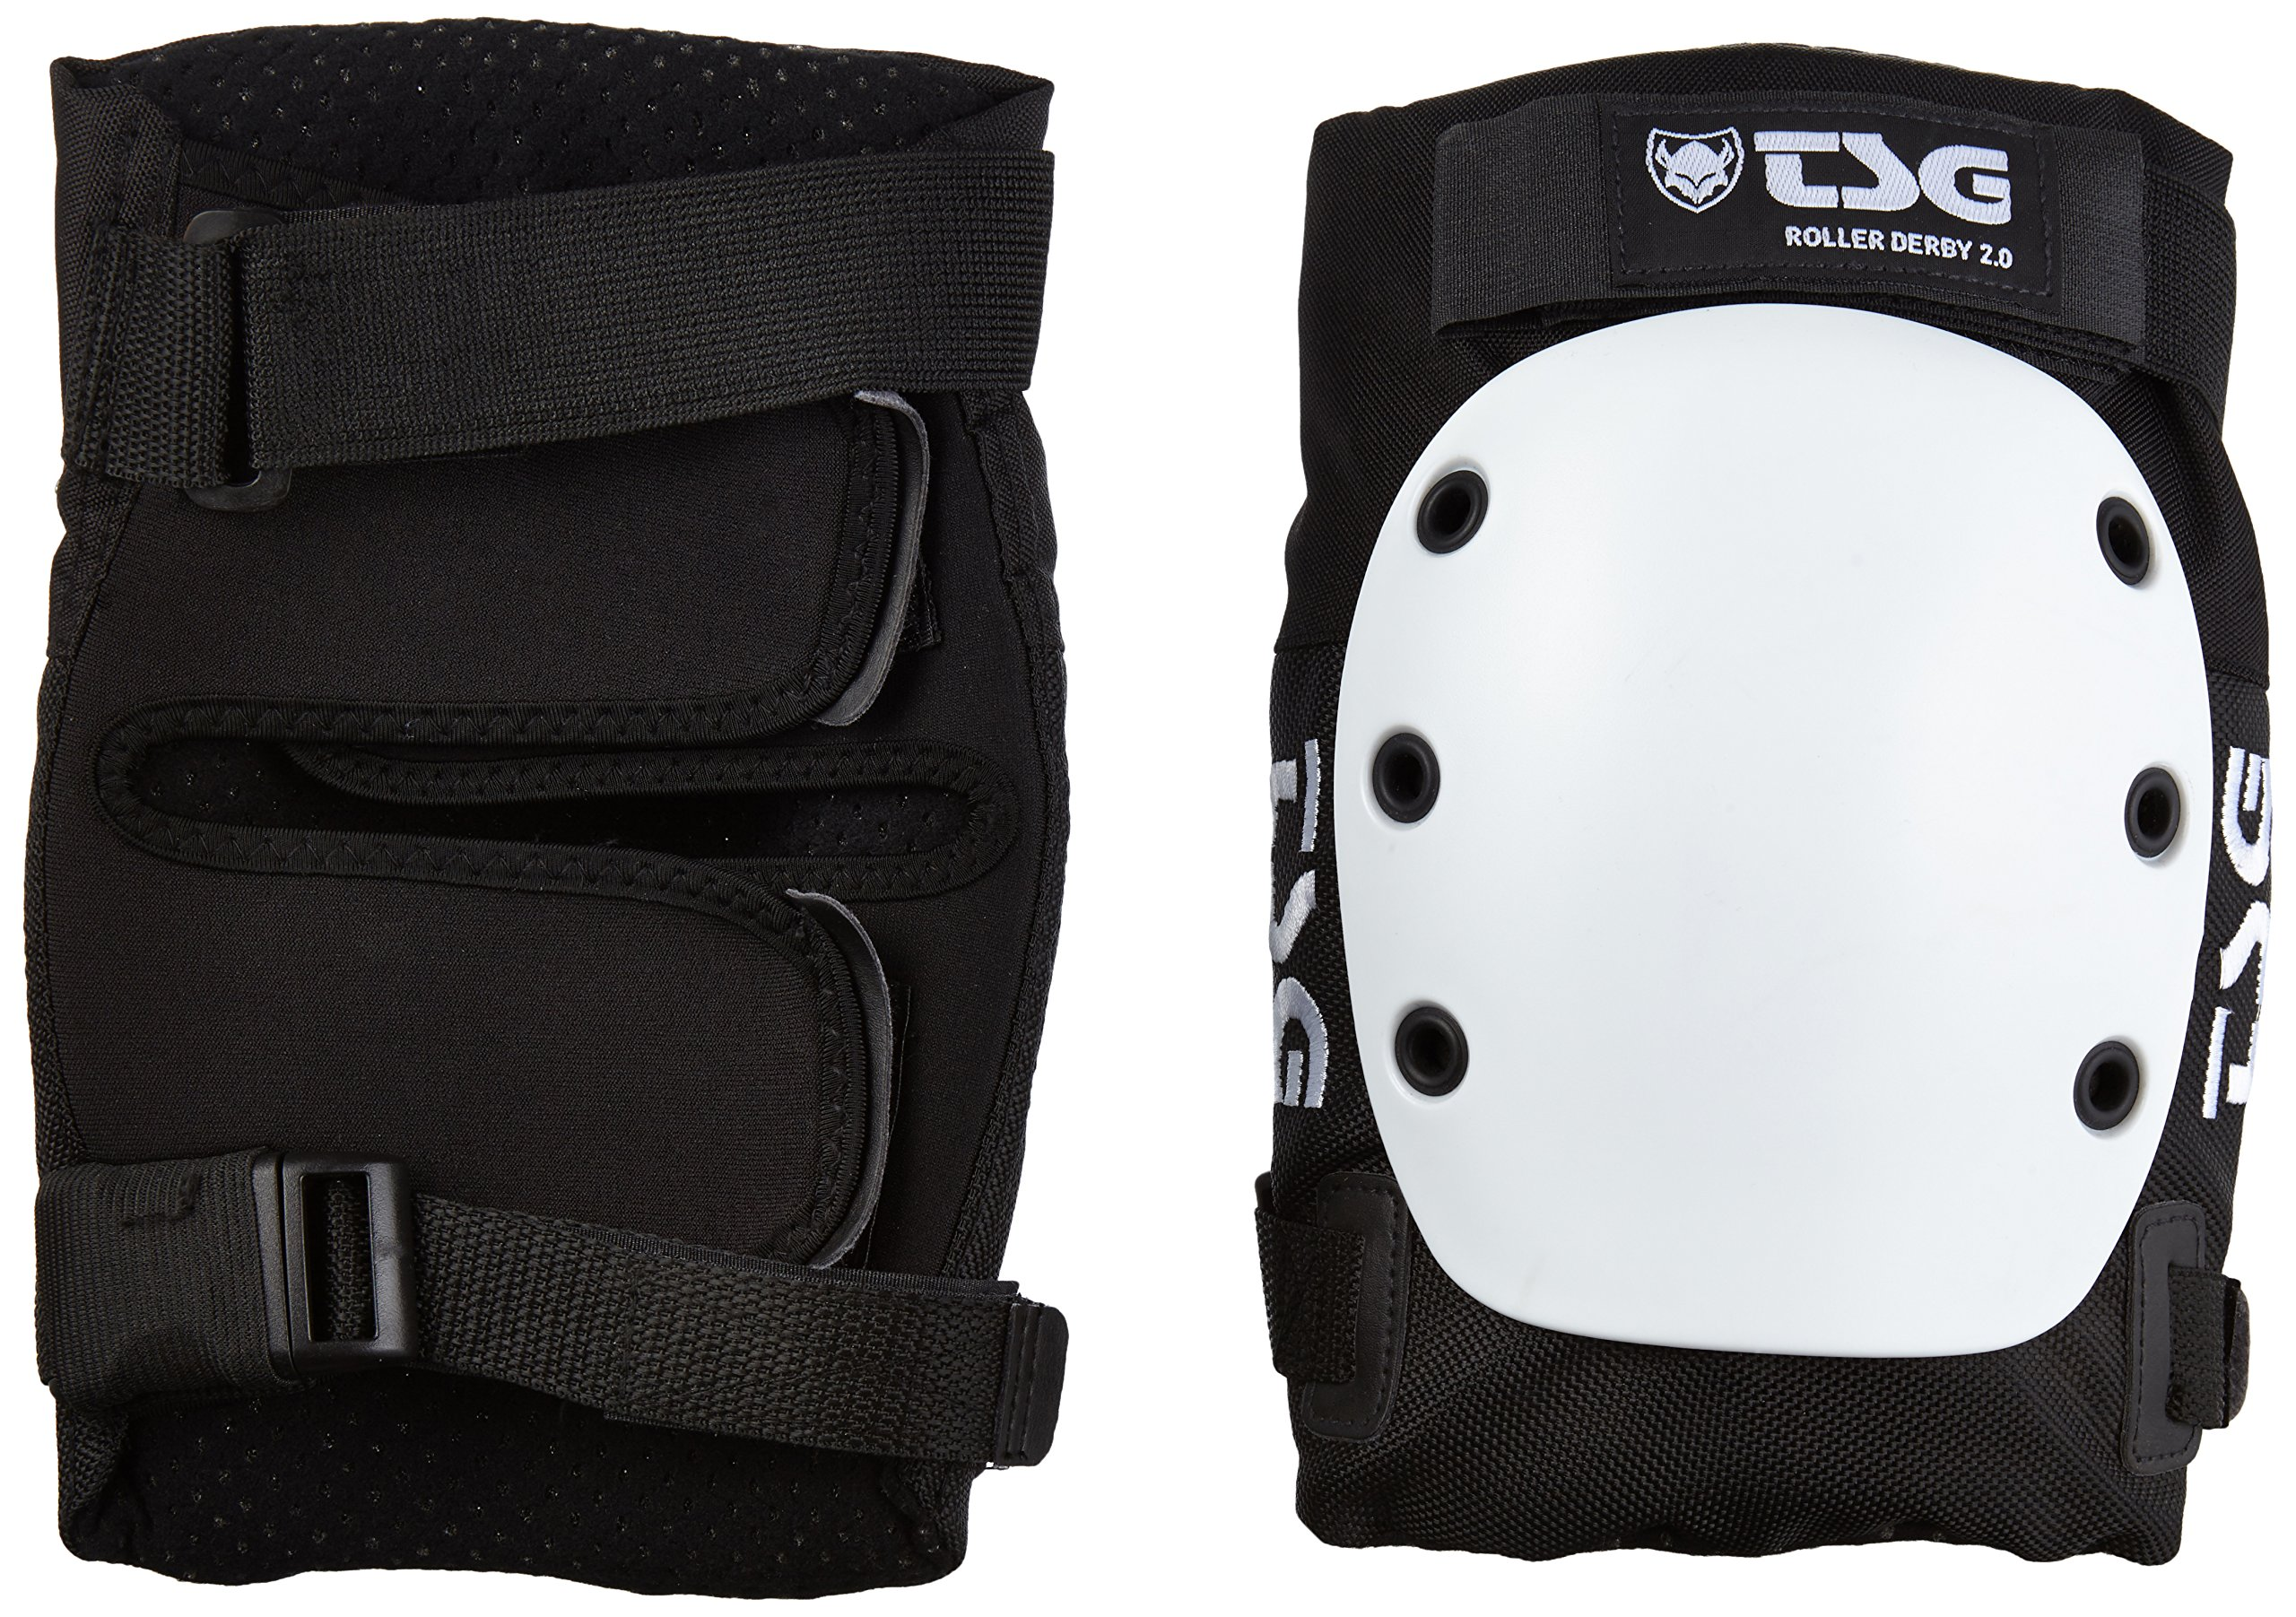 TSG protections pour genoux kneepad roller derby paire de genouillères 2.0 taille l (710043 by TSG